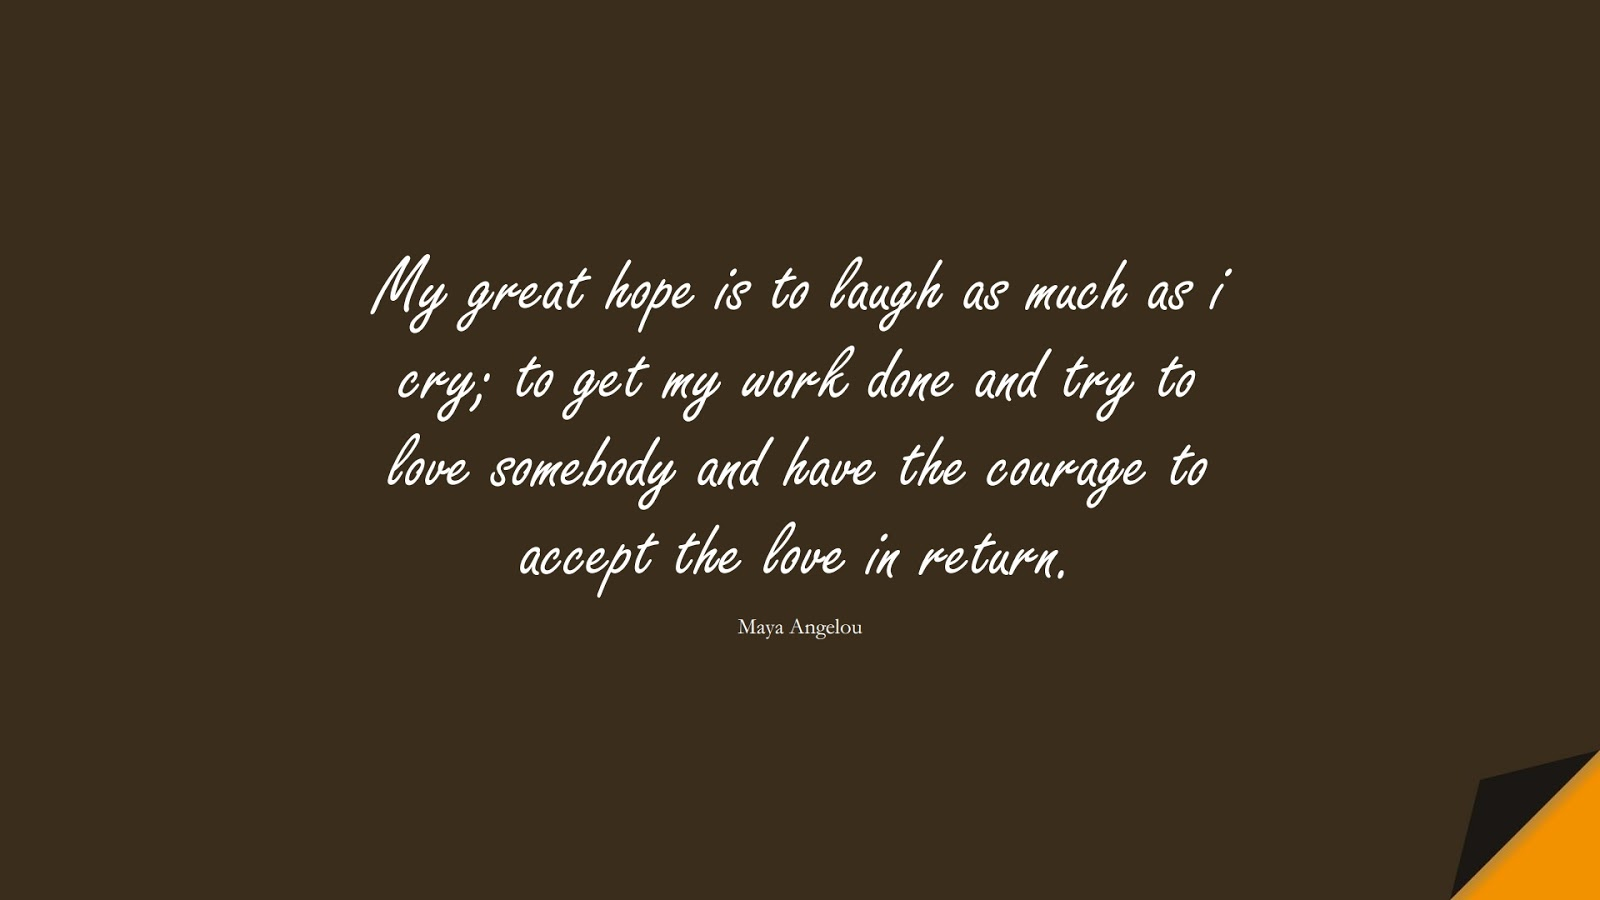 My great hope is to laugh as much as i cry; to get my work done and try to love somebody and have the courage to accept the love in return. (Maya Angelou);  #HopeQuotes